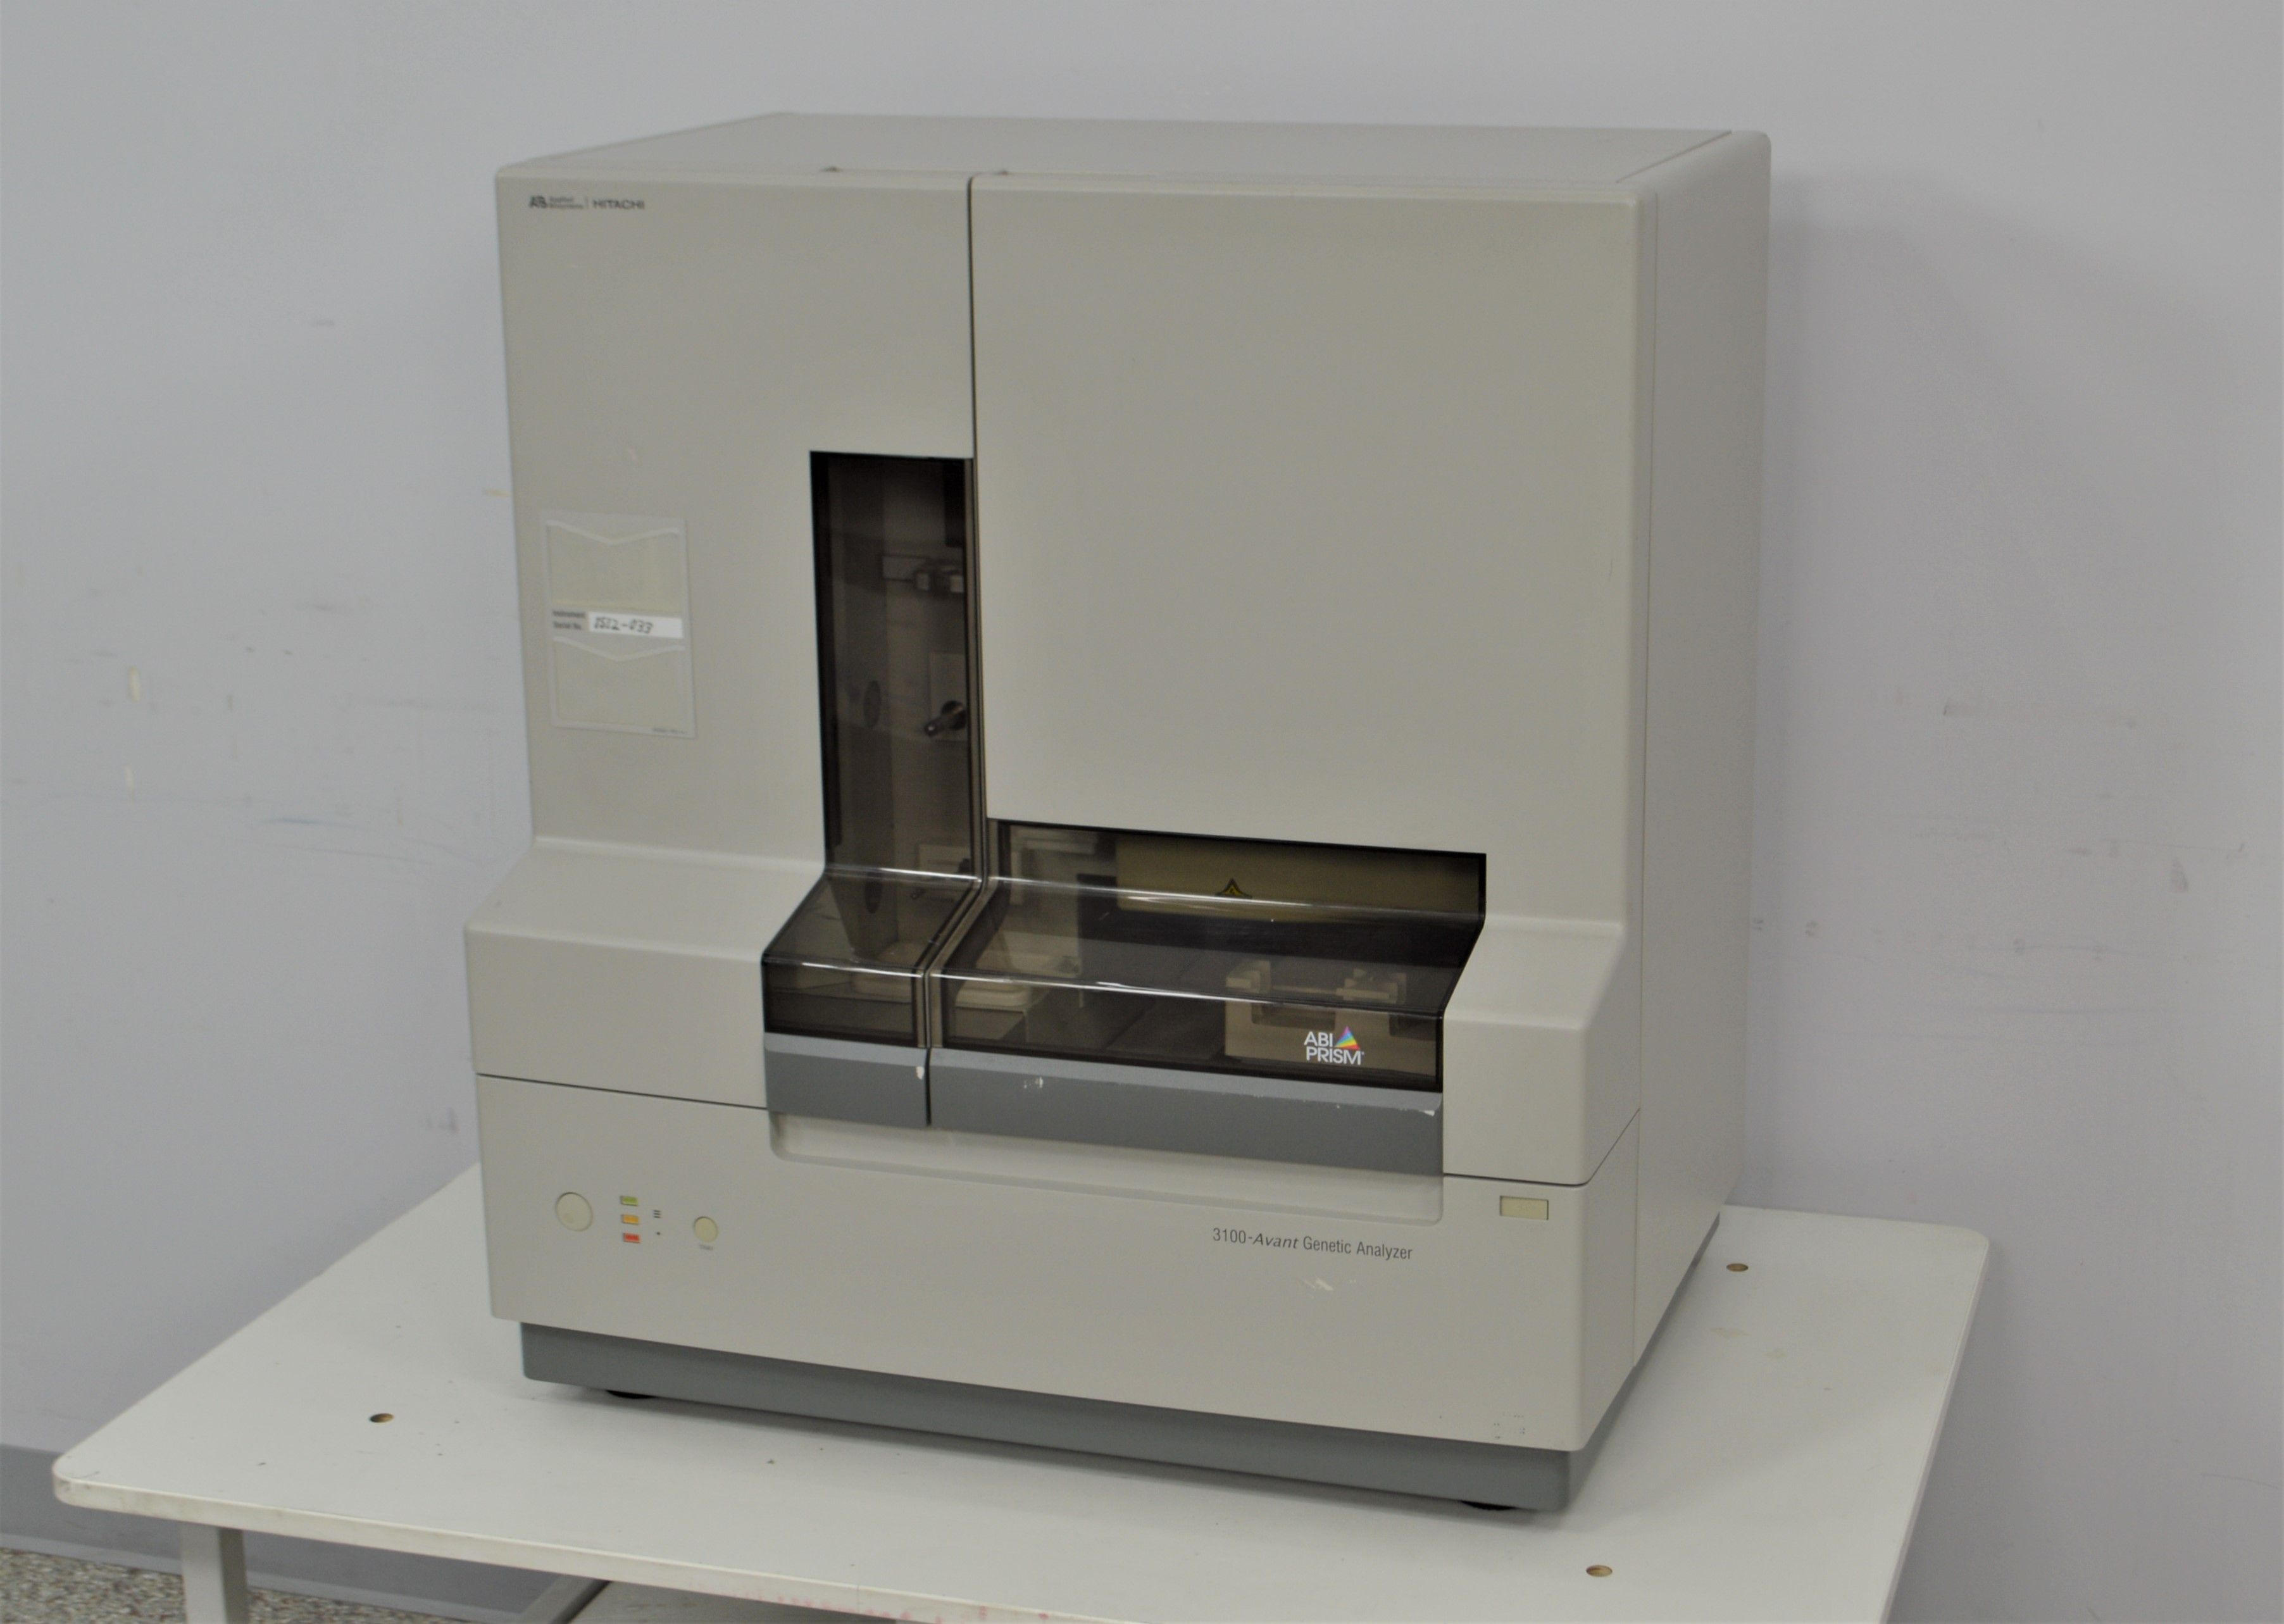 ABI Prism 3100 genetic analyzer (DNA Sequencer) Certified with Warranty